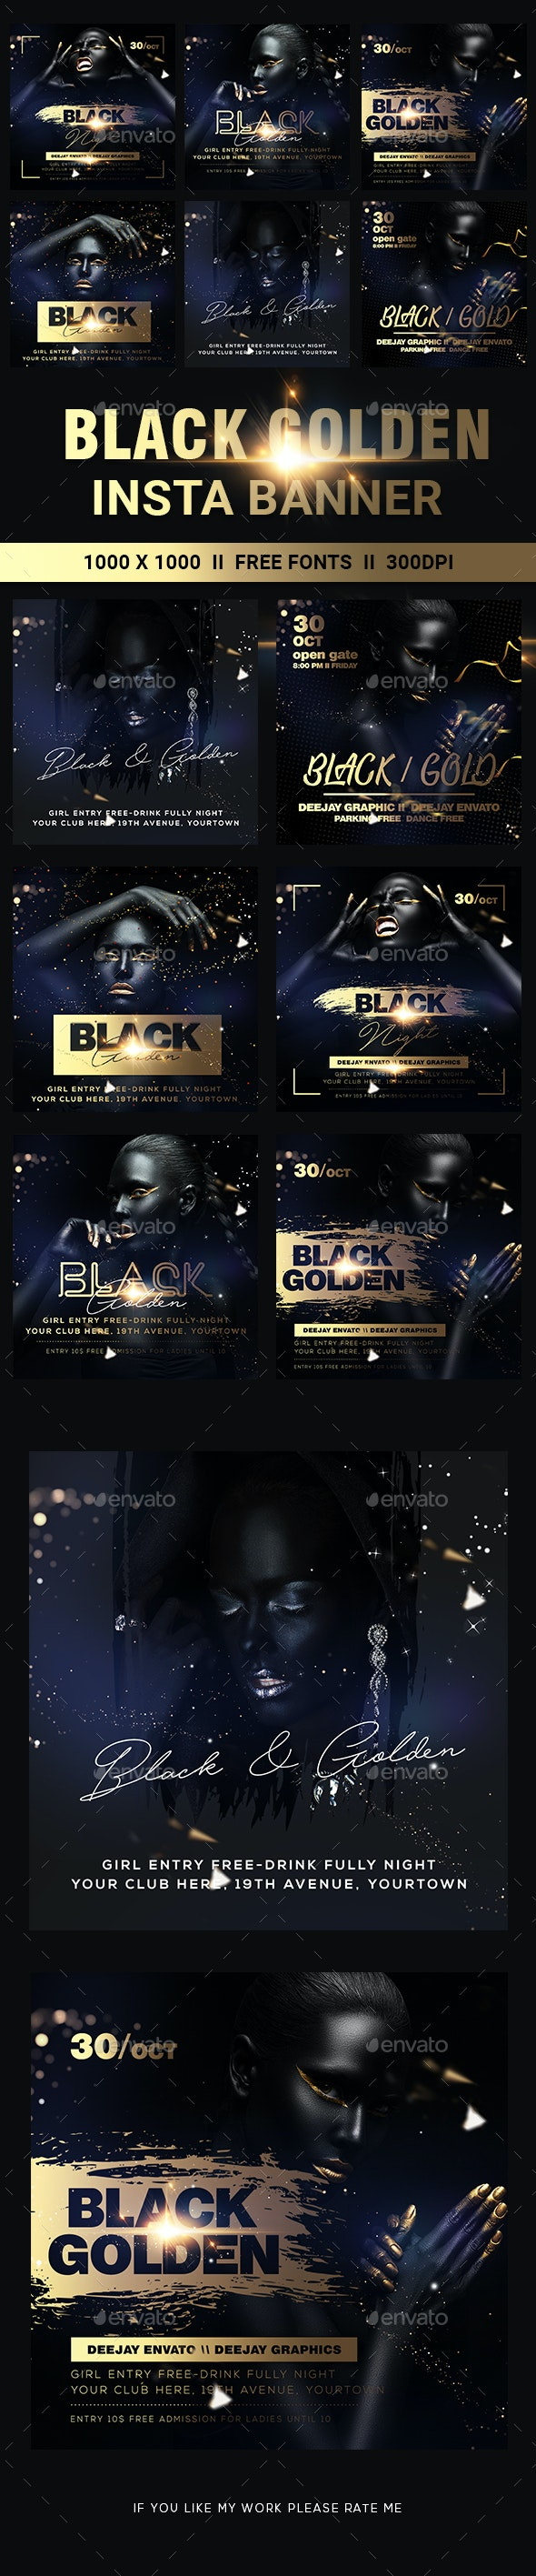 Golden Black Party Banners - Banners & Ads Web Elements